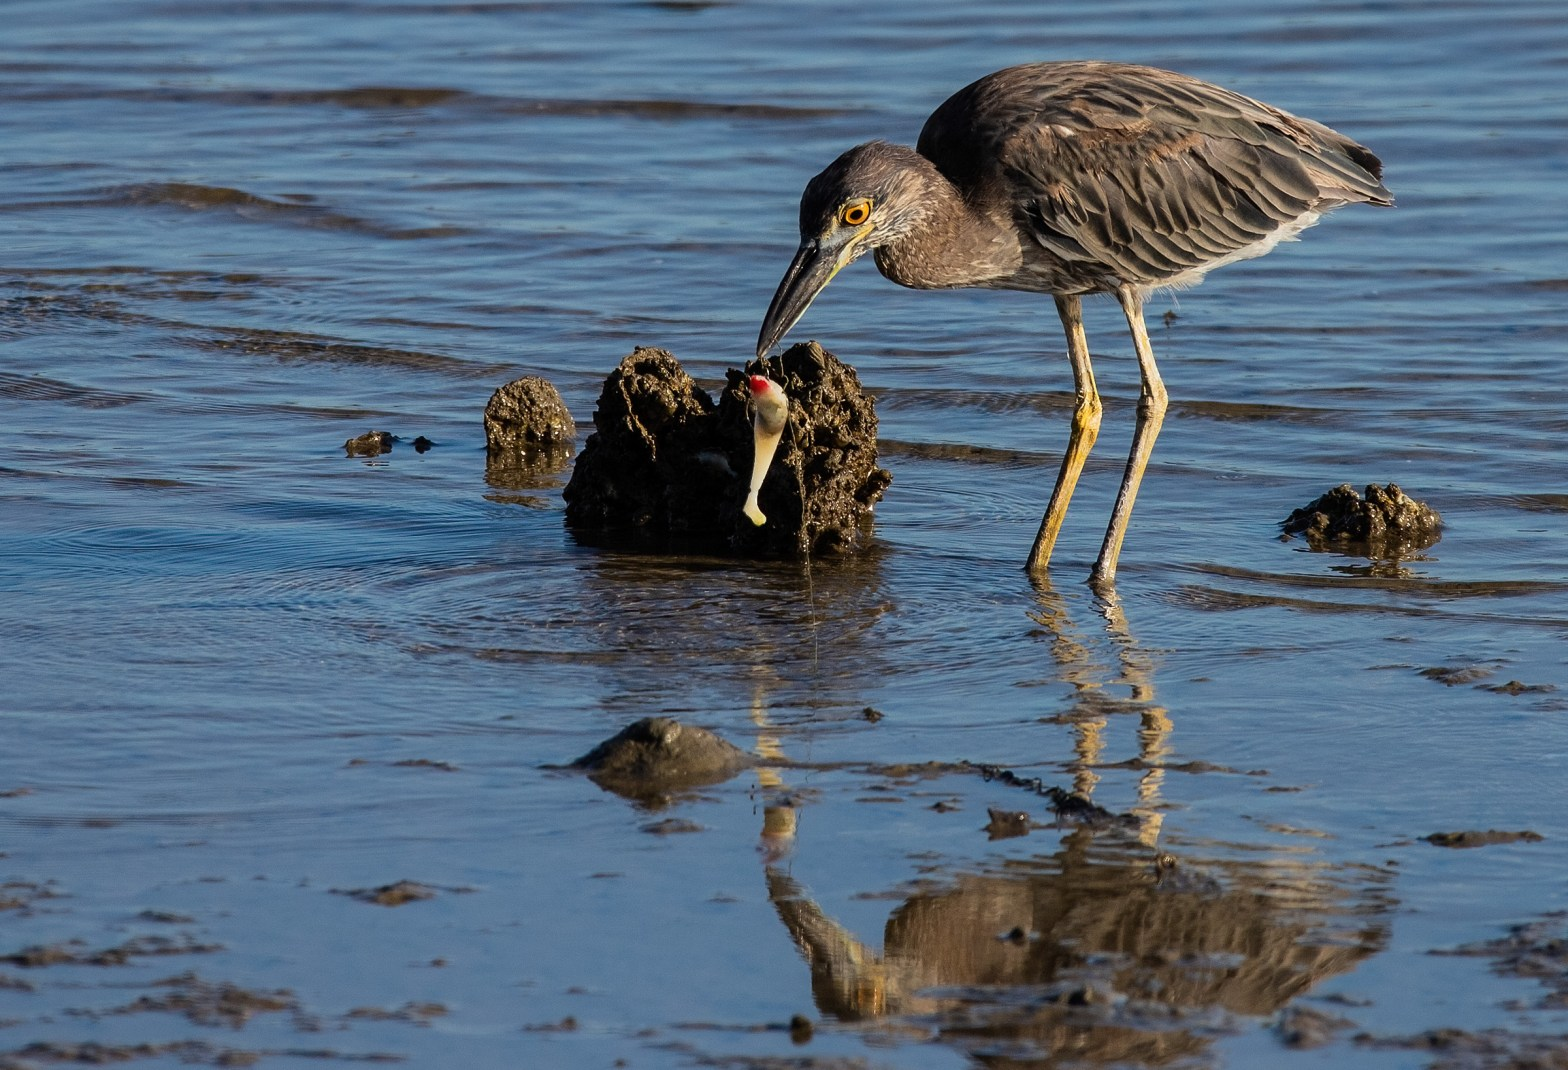 Juvenile yellow-crowned night heron(Nyctanassa violacea) with fishing lure dangling from its mouth during the low tide along the shore of Mill Creek at Fort Monroe in Hampton, Virginia.